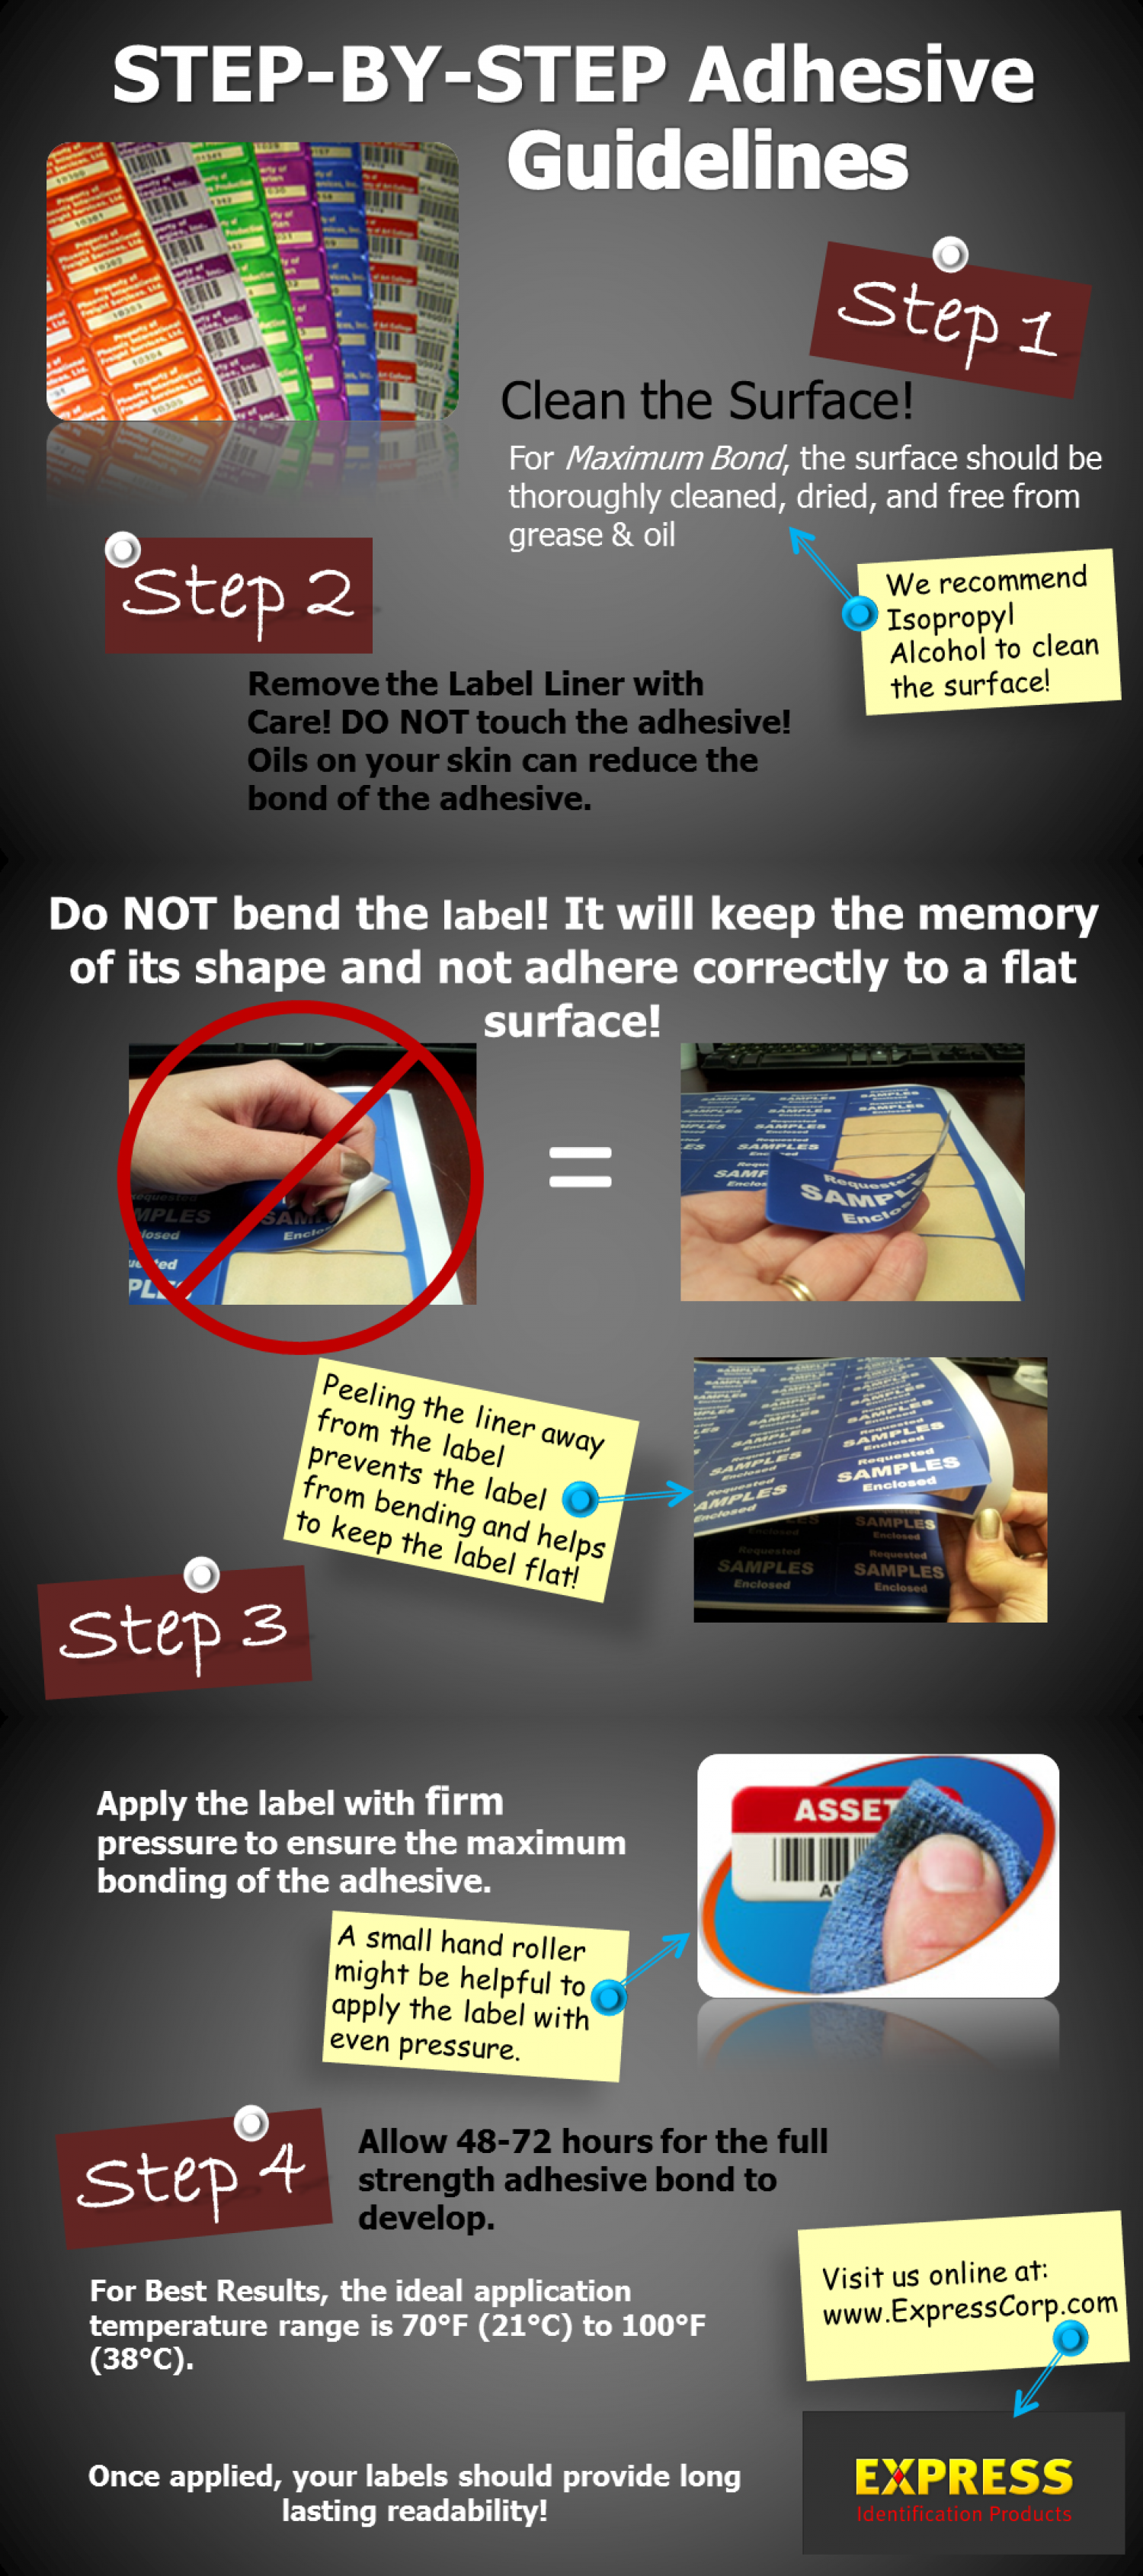 Applying Adhesive Labels | Step-by-Step Adhesive Guidelines Infographic